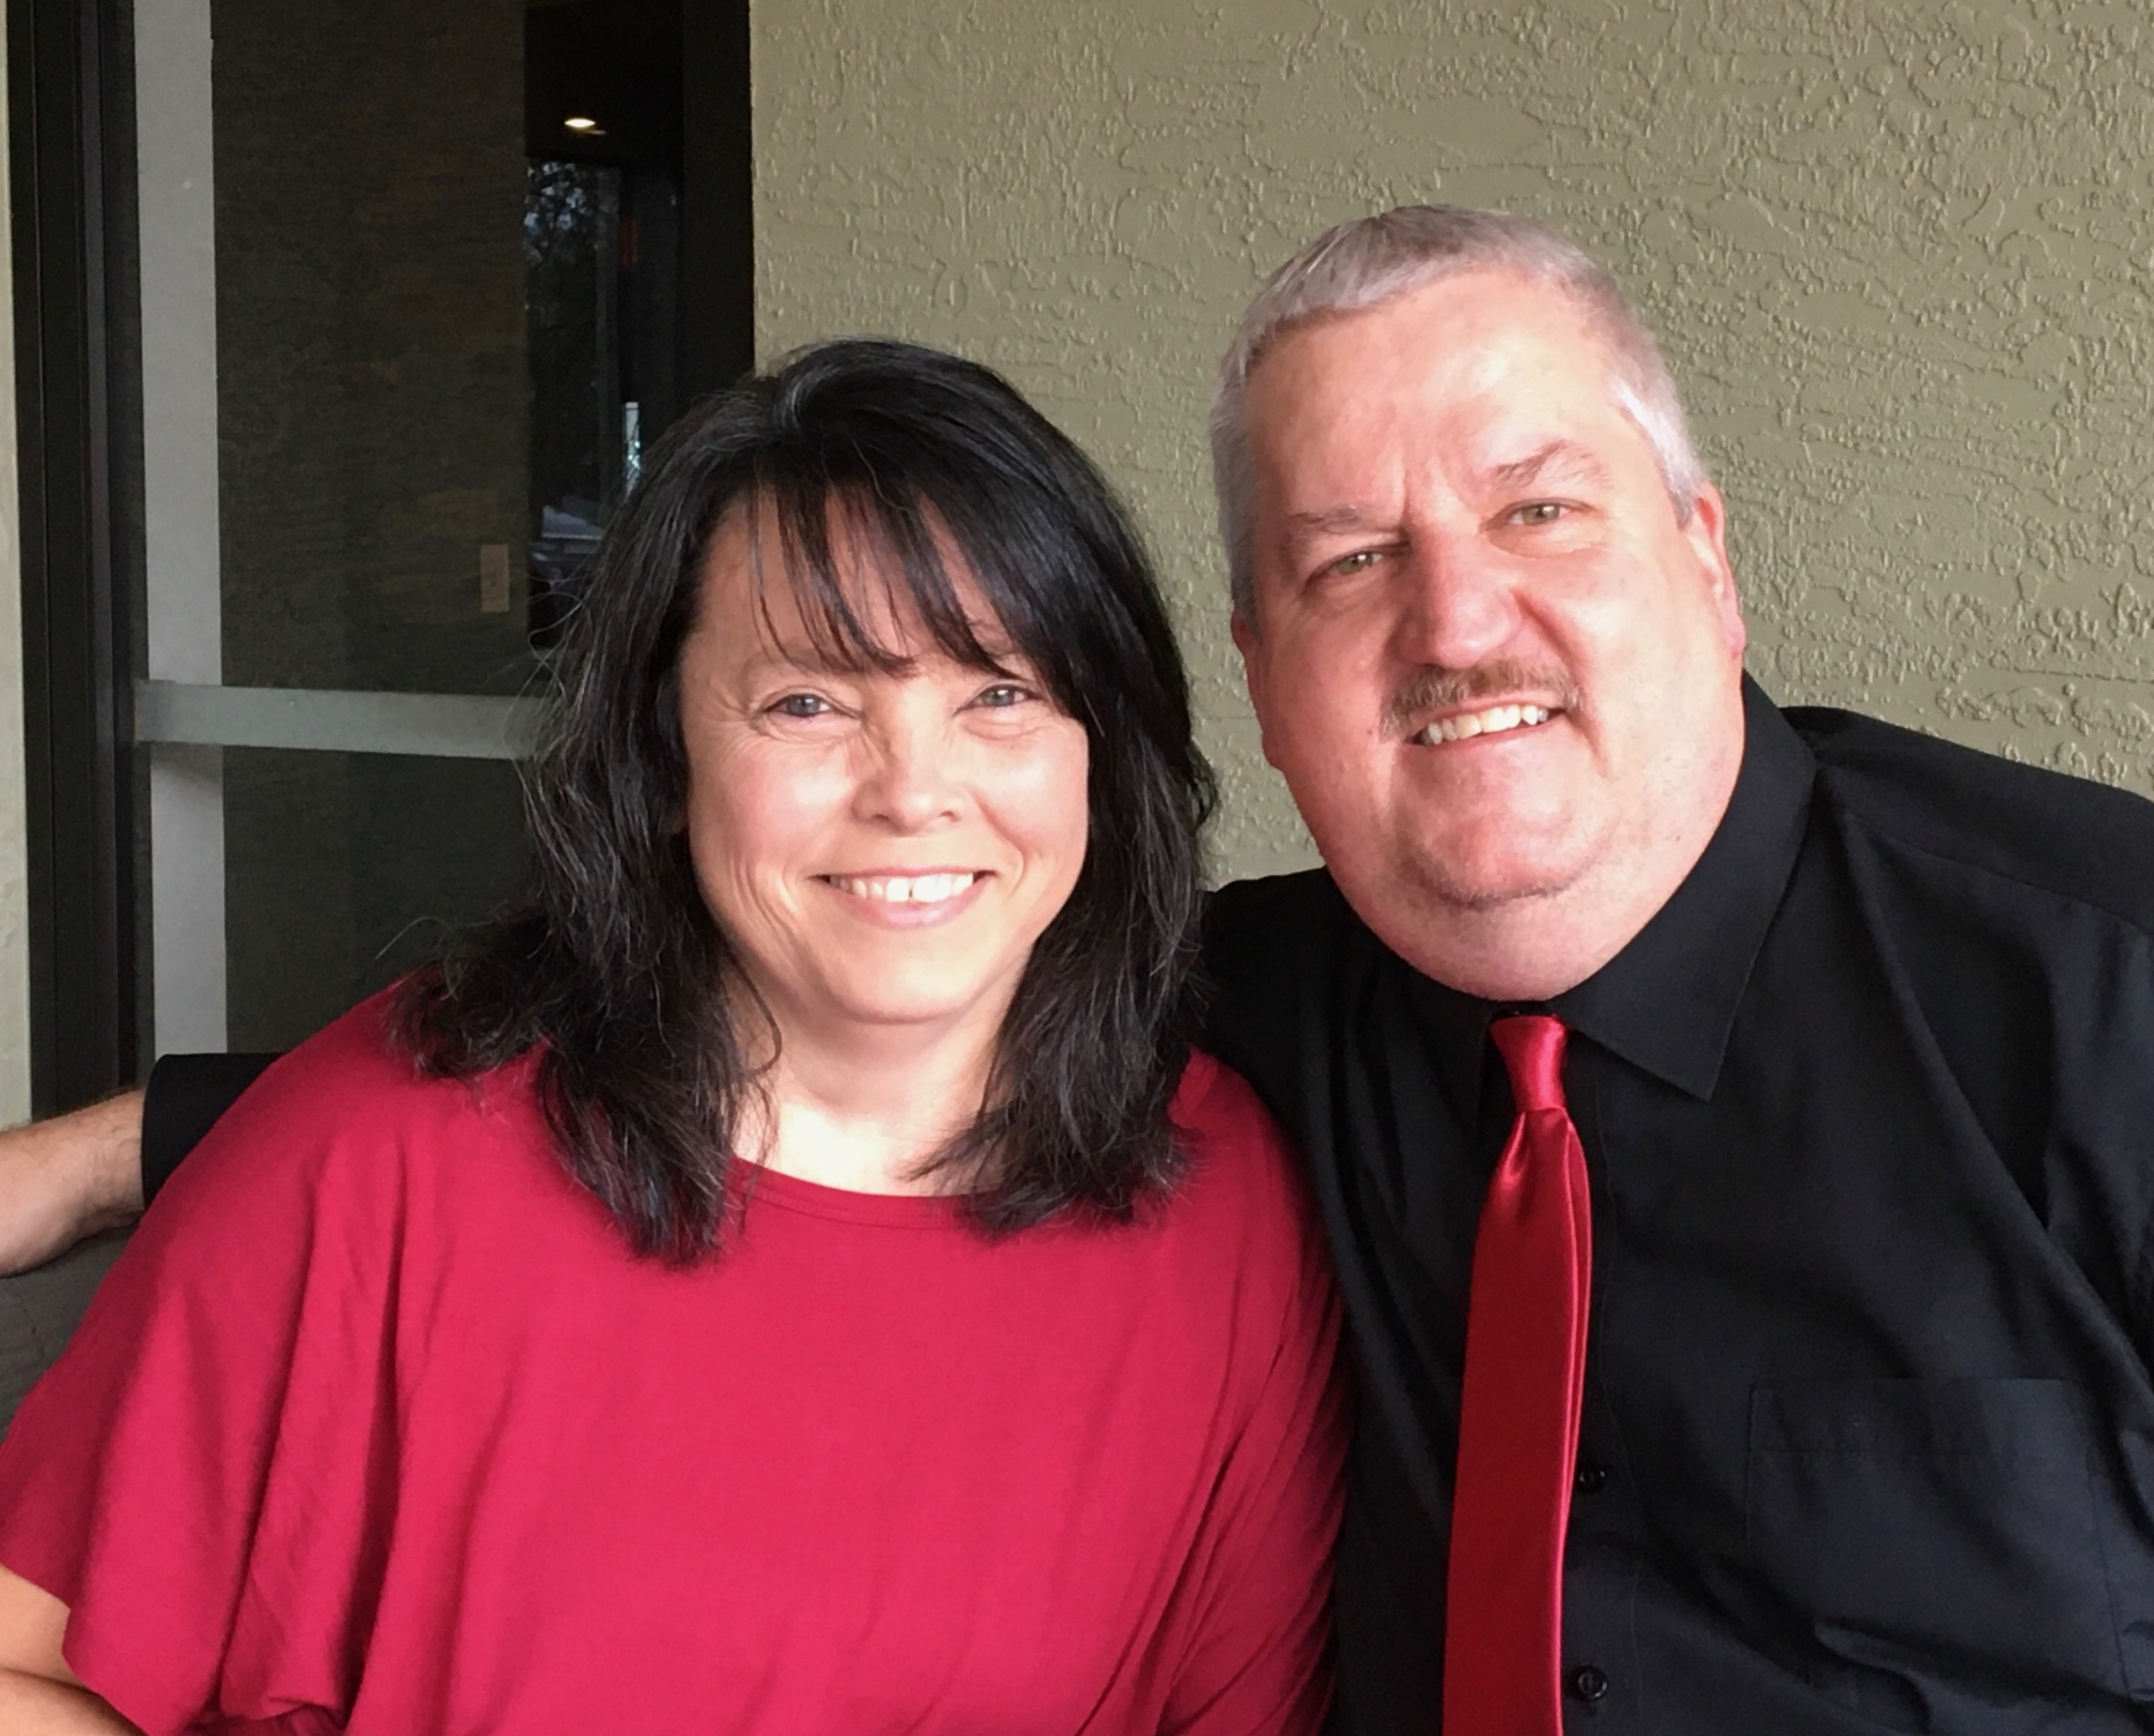 Pastor Mike and wife Tina Wilder